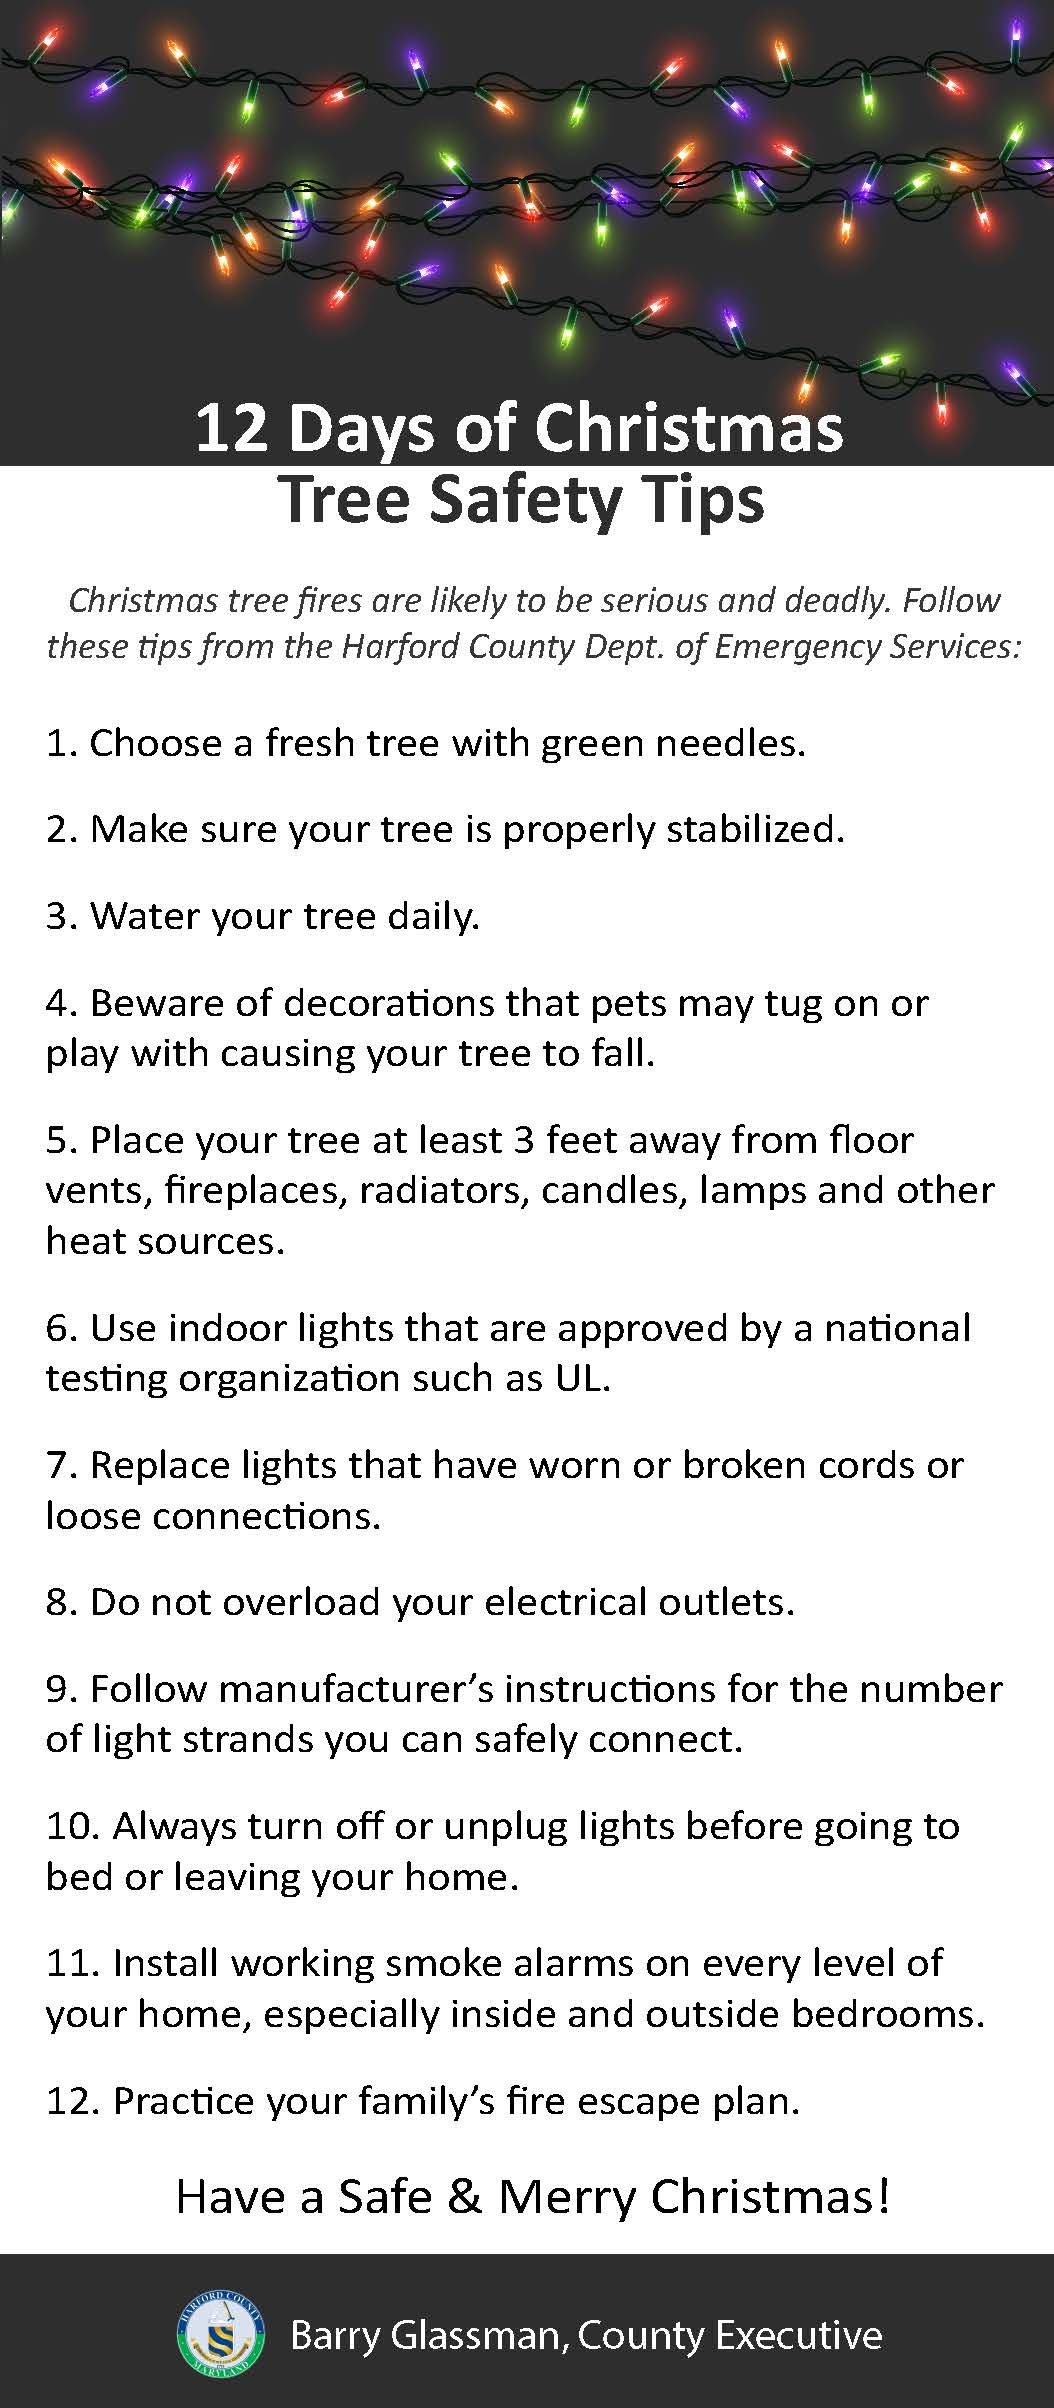 12 Days of Christmas Tree Safety Tips